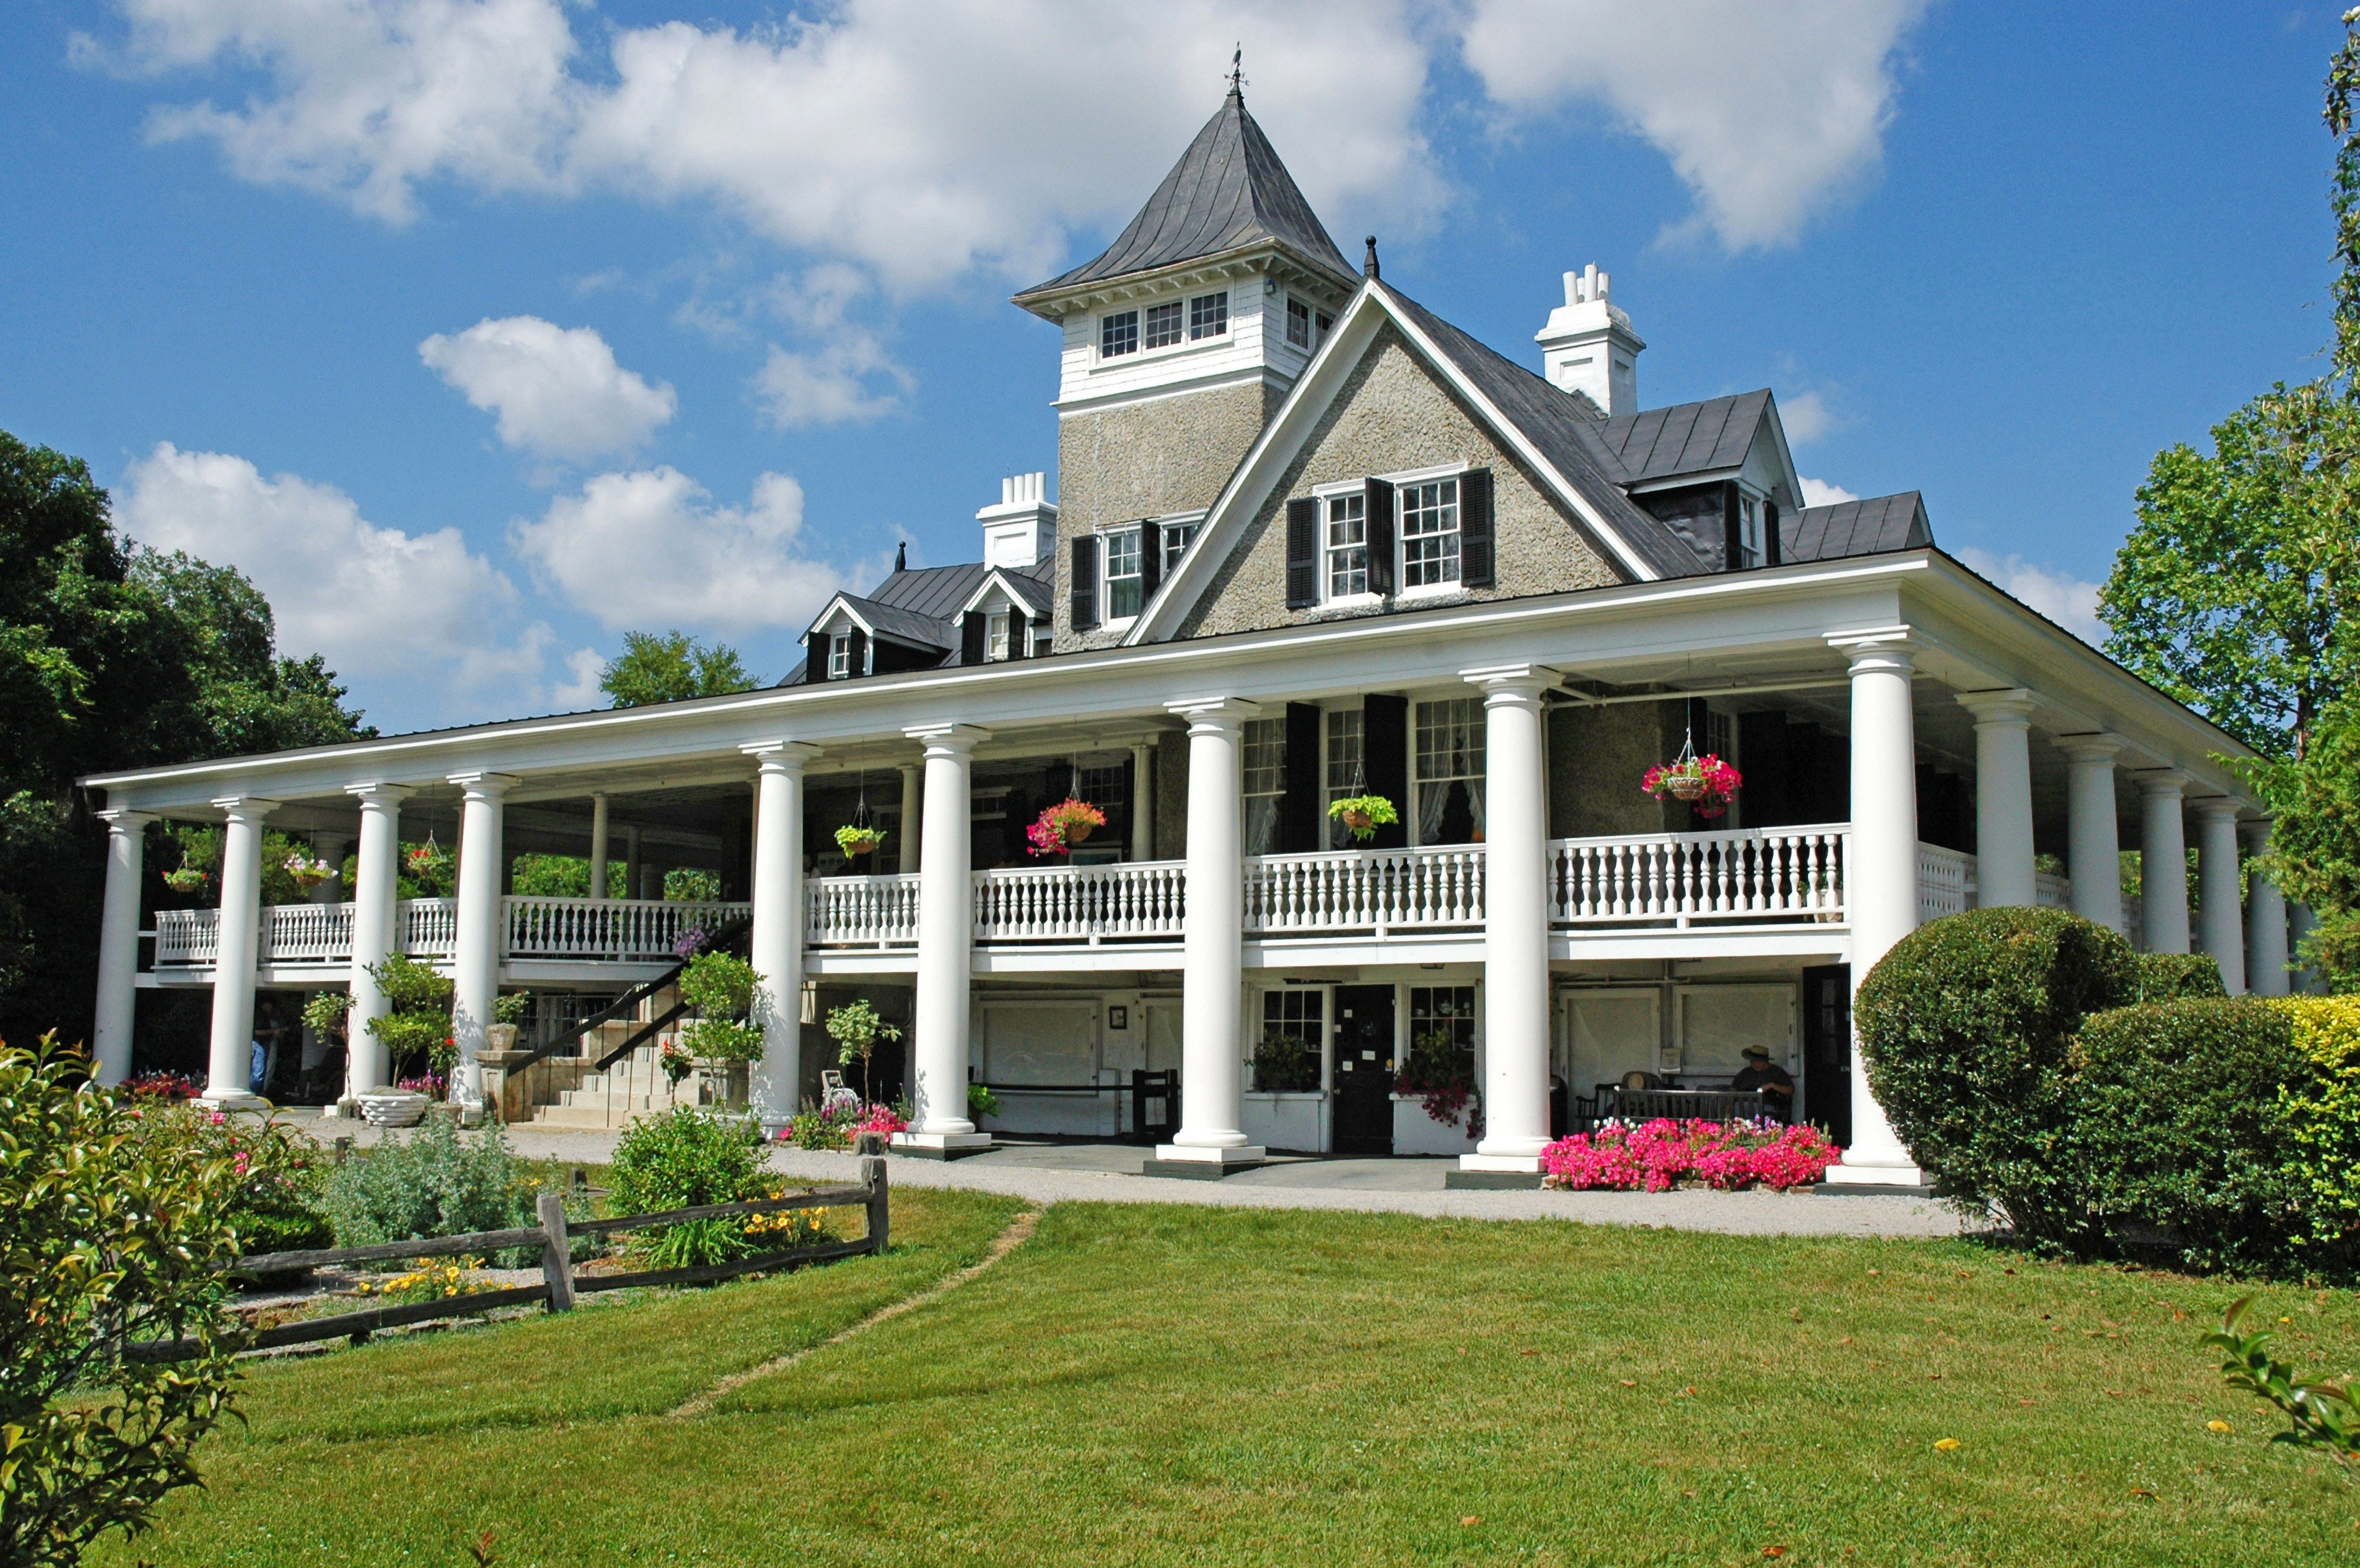 9 Grand Antebellum Homes Rich in History and Stunning